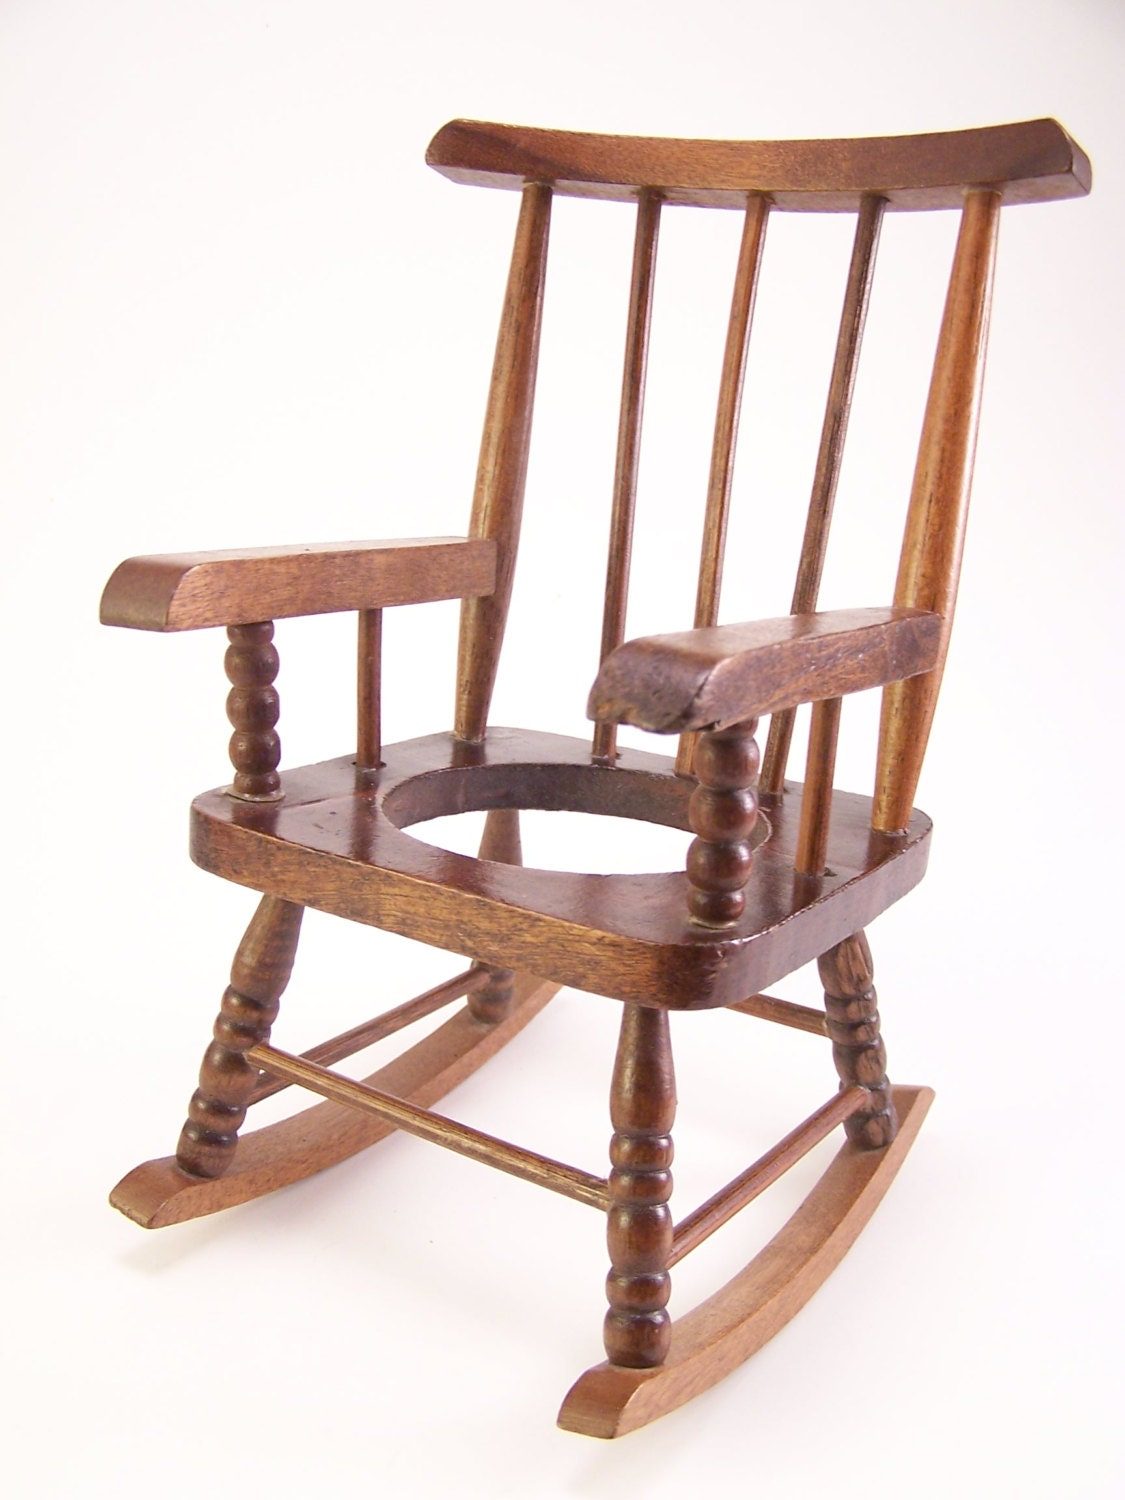 ... doll chair supply wooden chair rocking wooden chair doll wooden chair